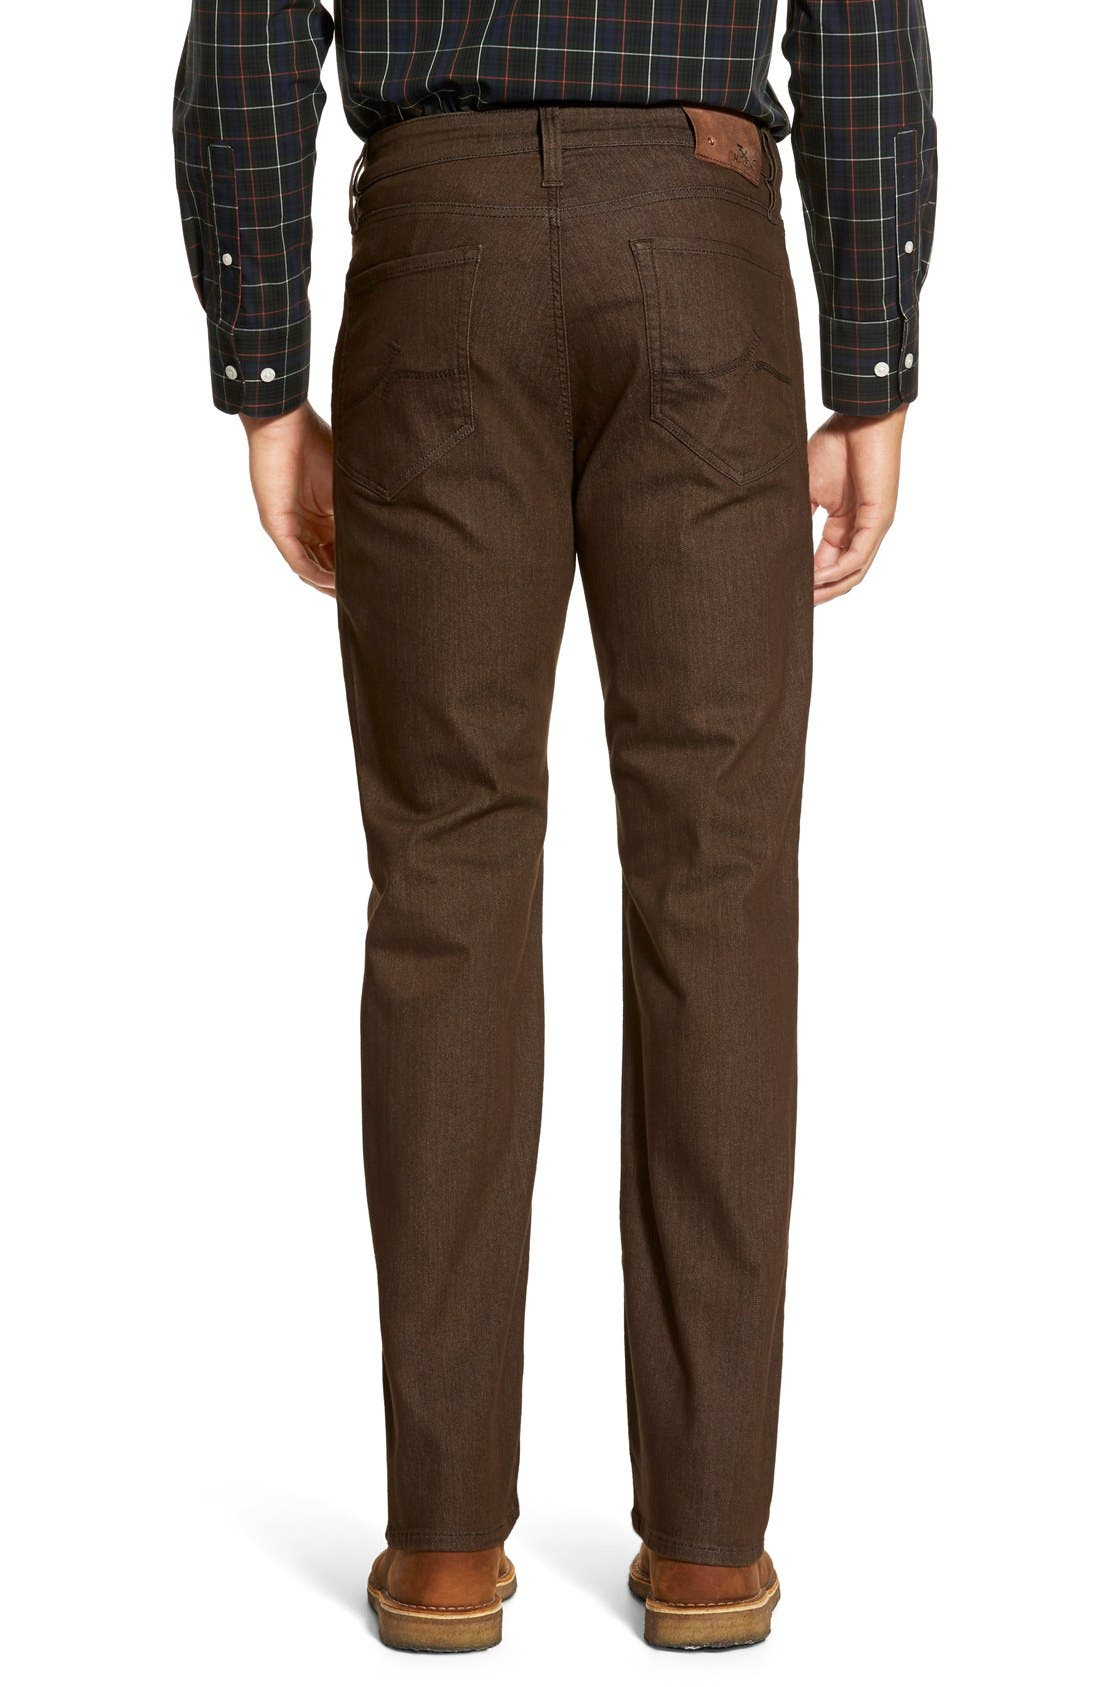 'Charisma' Relaxed Fit Jeans,                             Alternate thumbnail 2, color,                             Brown Comfort